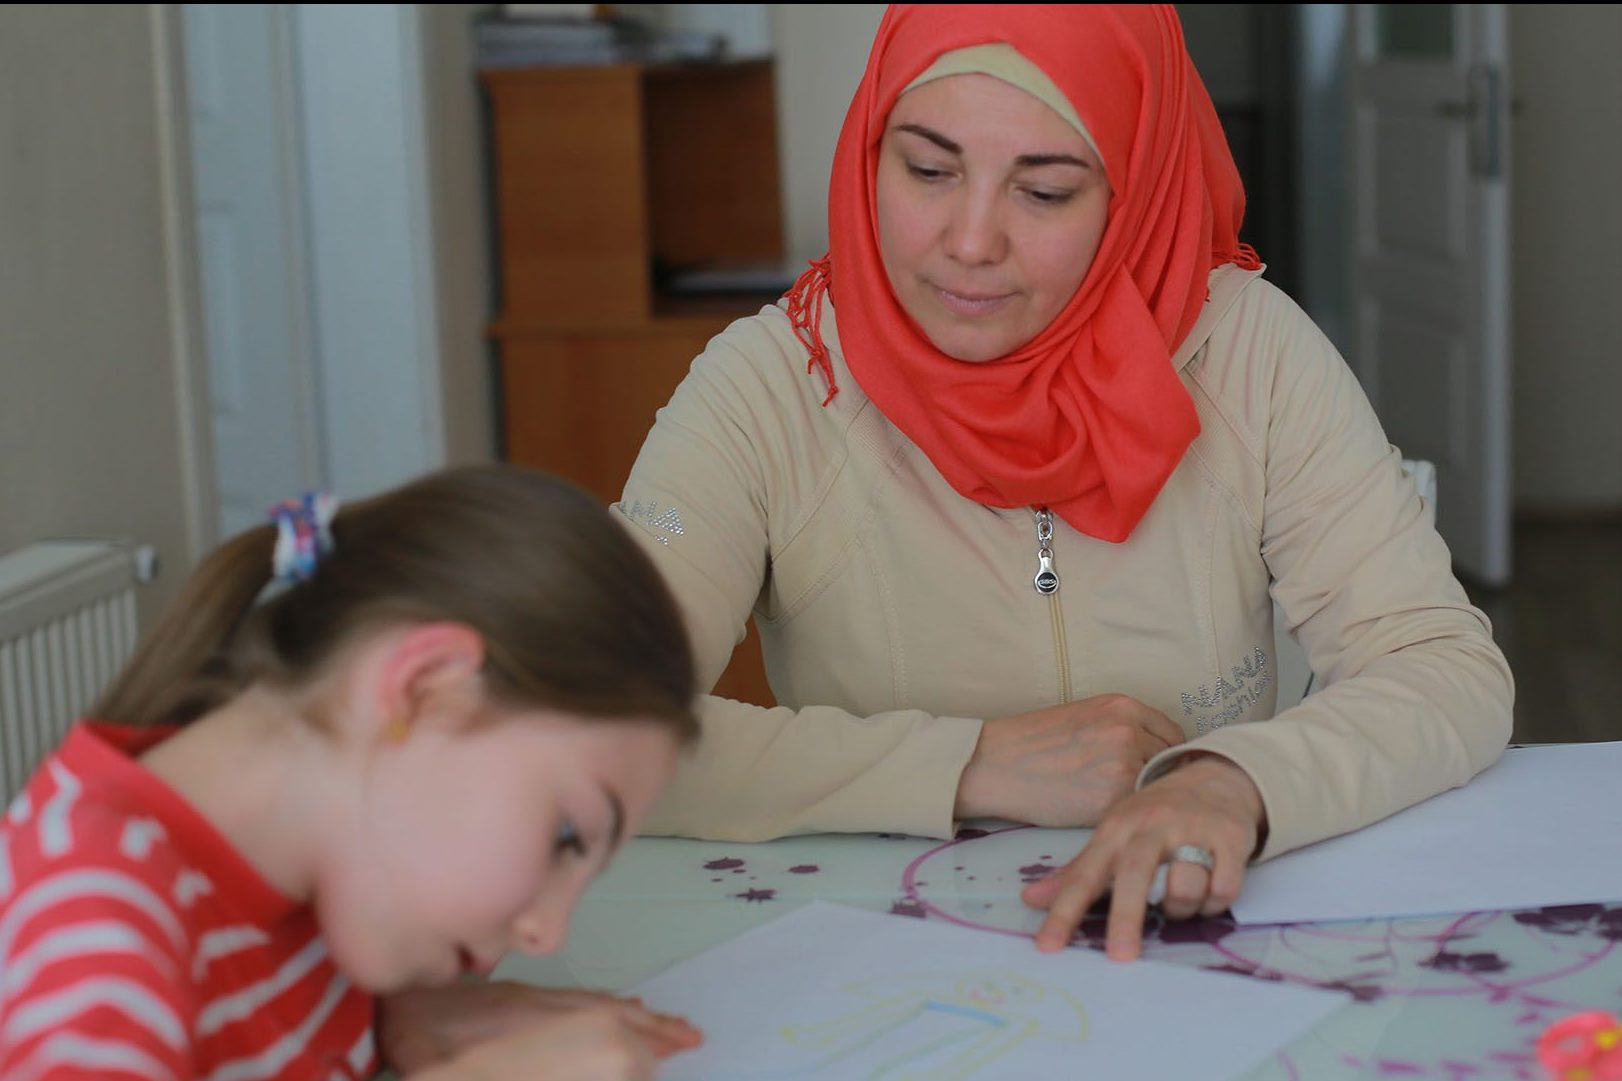 Darie Alikaj fled barrel bombs and mortar fire in Syria, leaving behind her job as a microbiologist. Now she mirrors a wider world of refugee survival in Turkey.